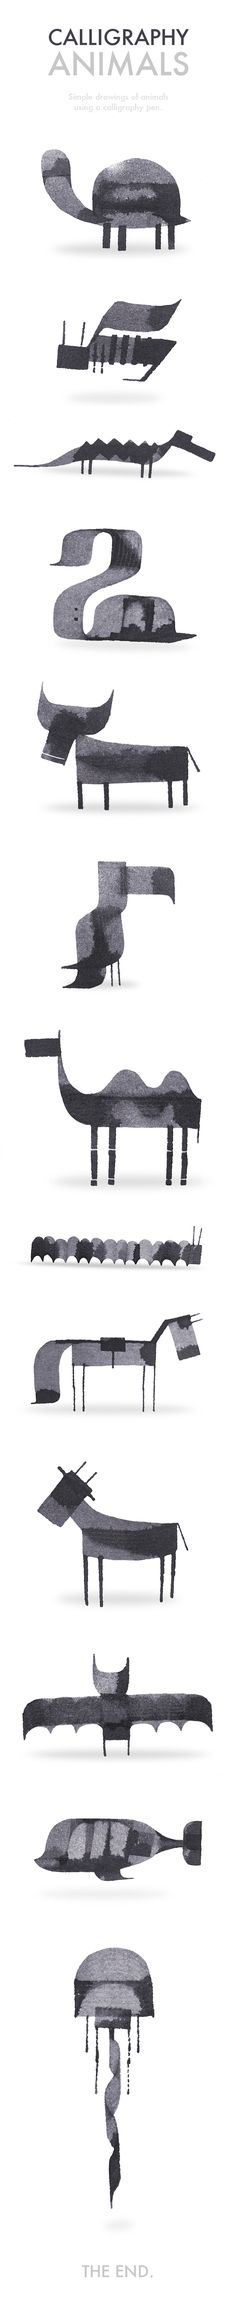 More Calligraphy Animals by Andrew Fox, via Behance